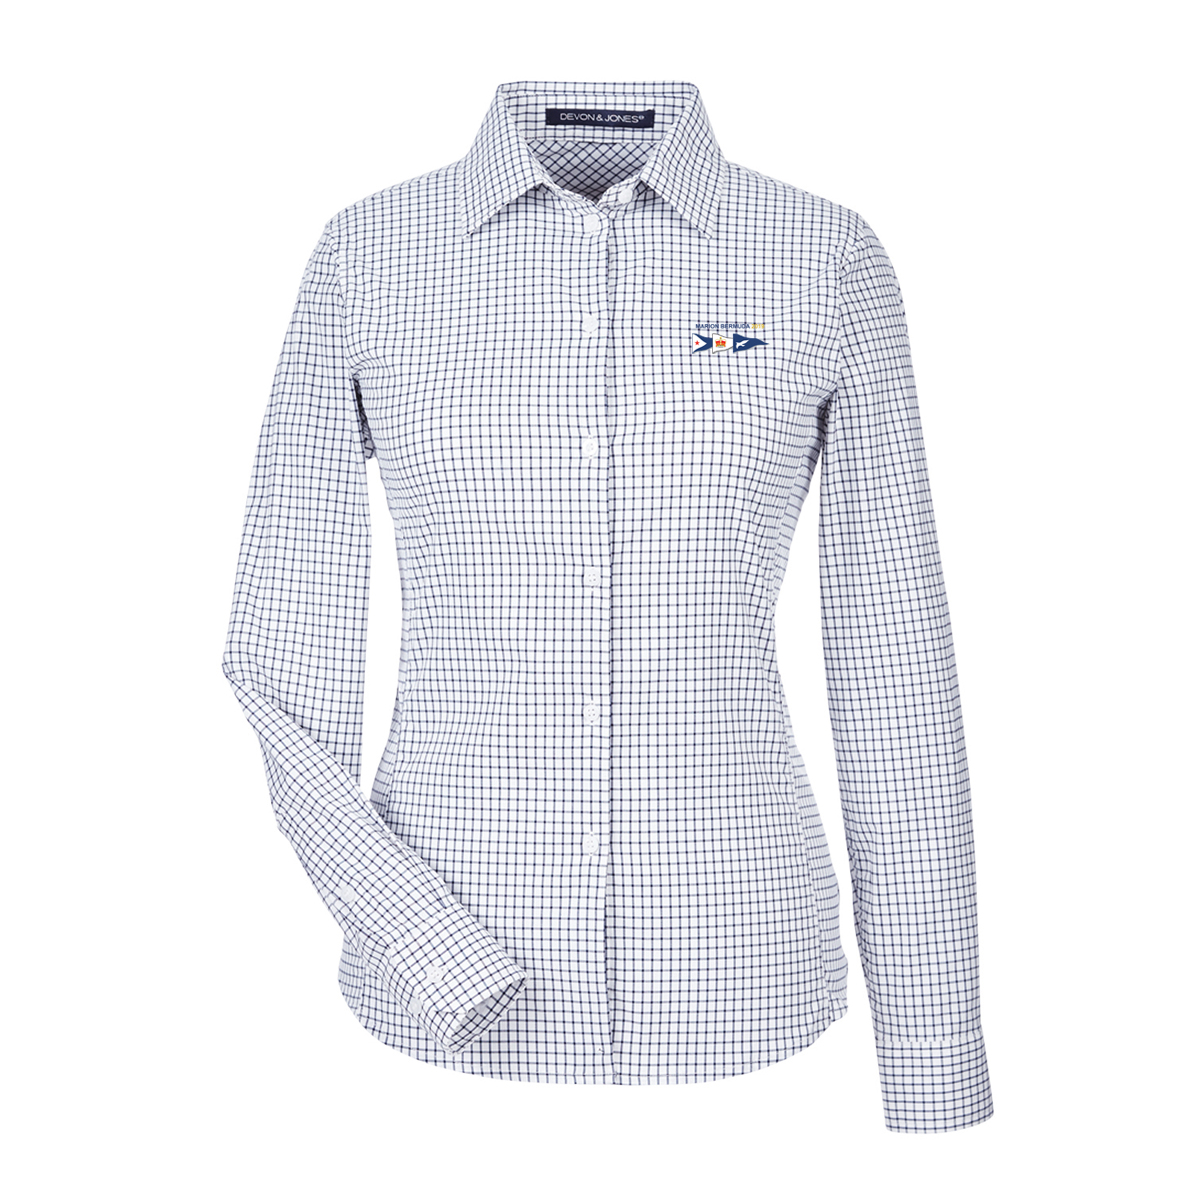 MBR  19 W'S WINDOWPANE BUTTON DOWN